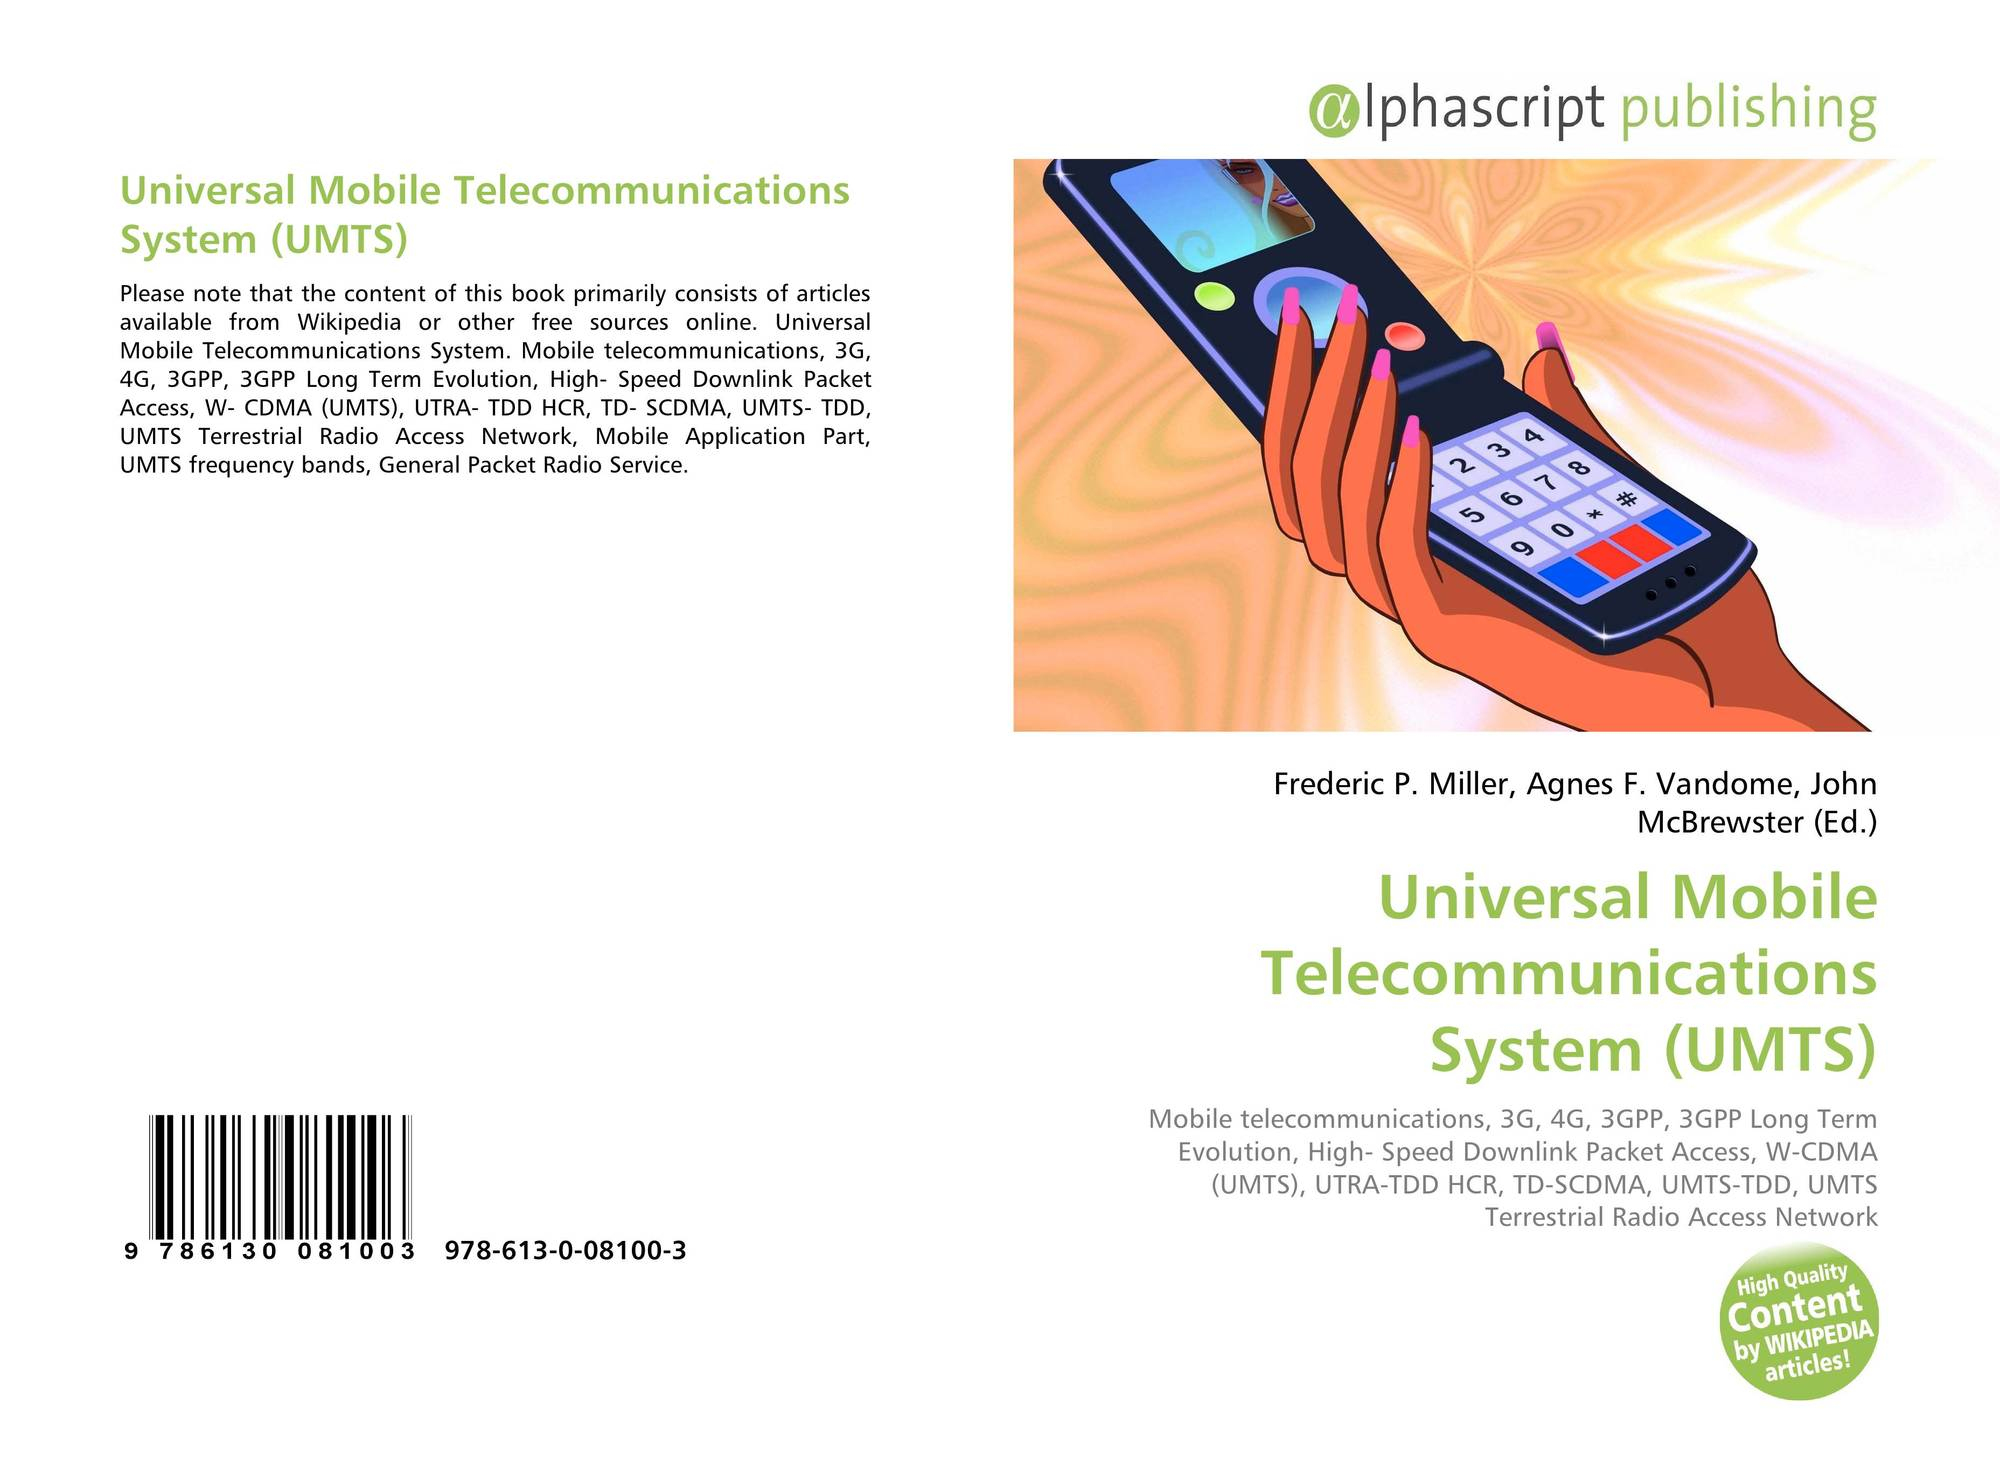 Universal Mobile Telecommunications System (UMTS), 978-613-0